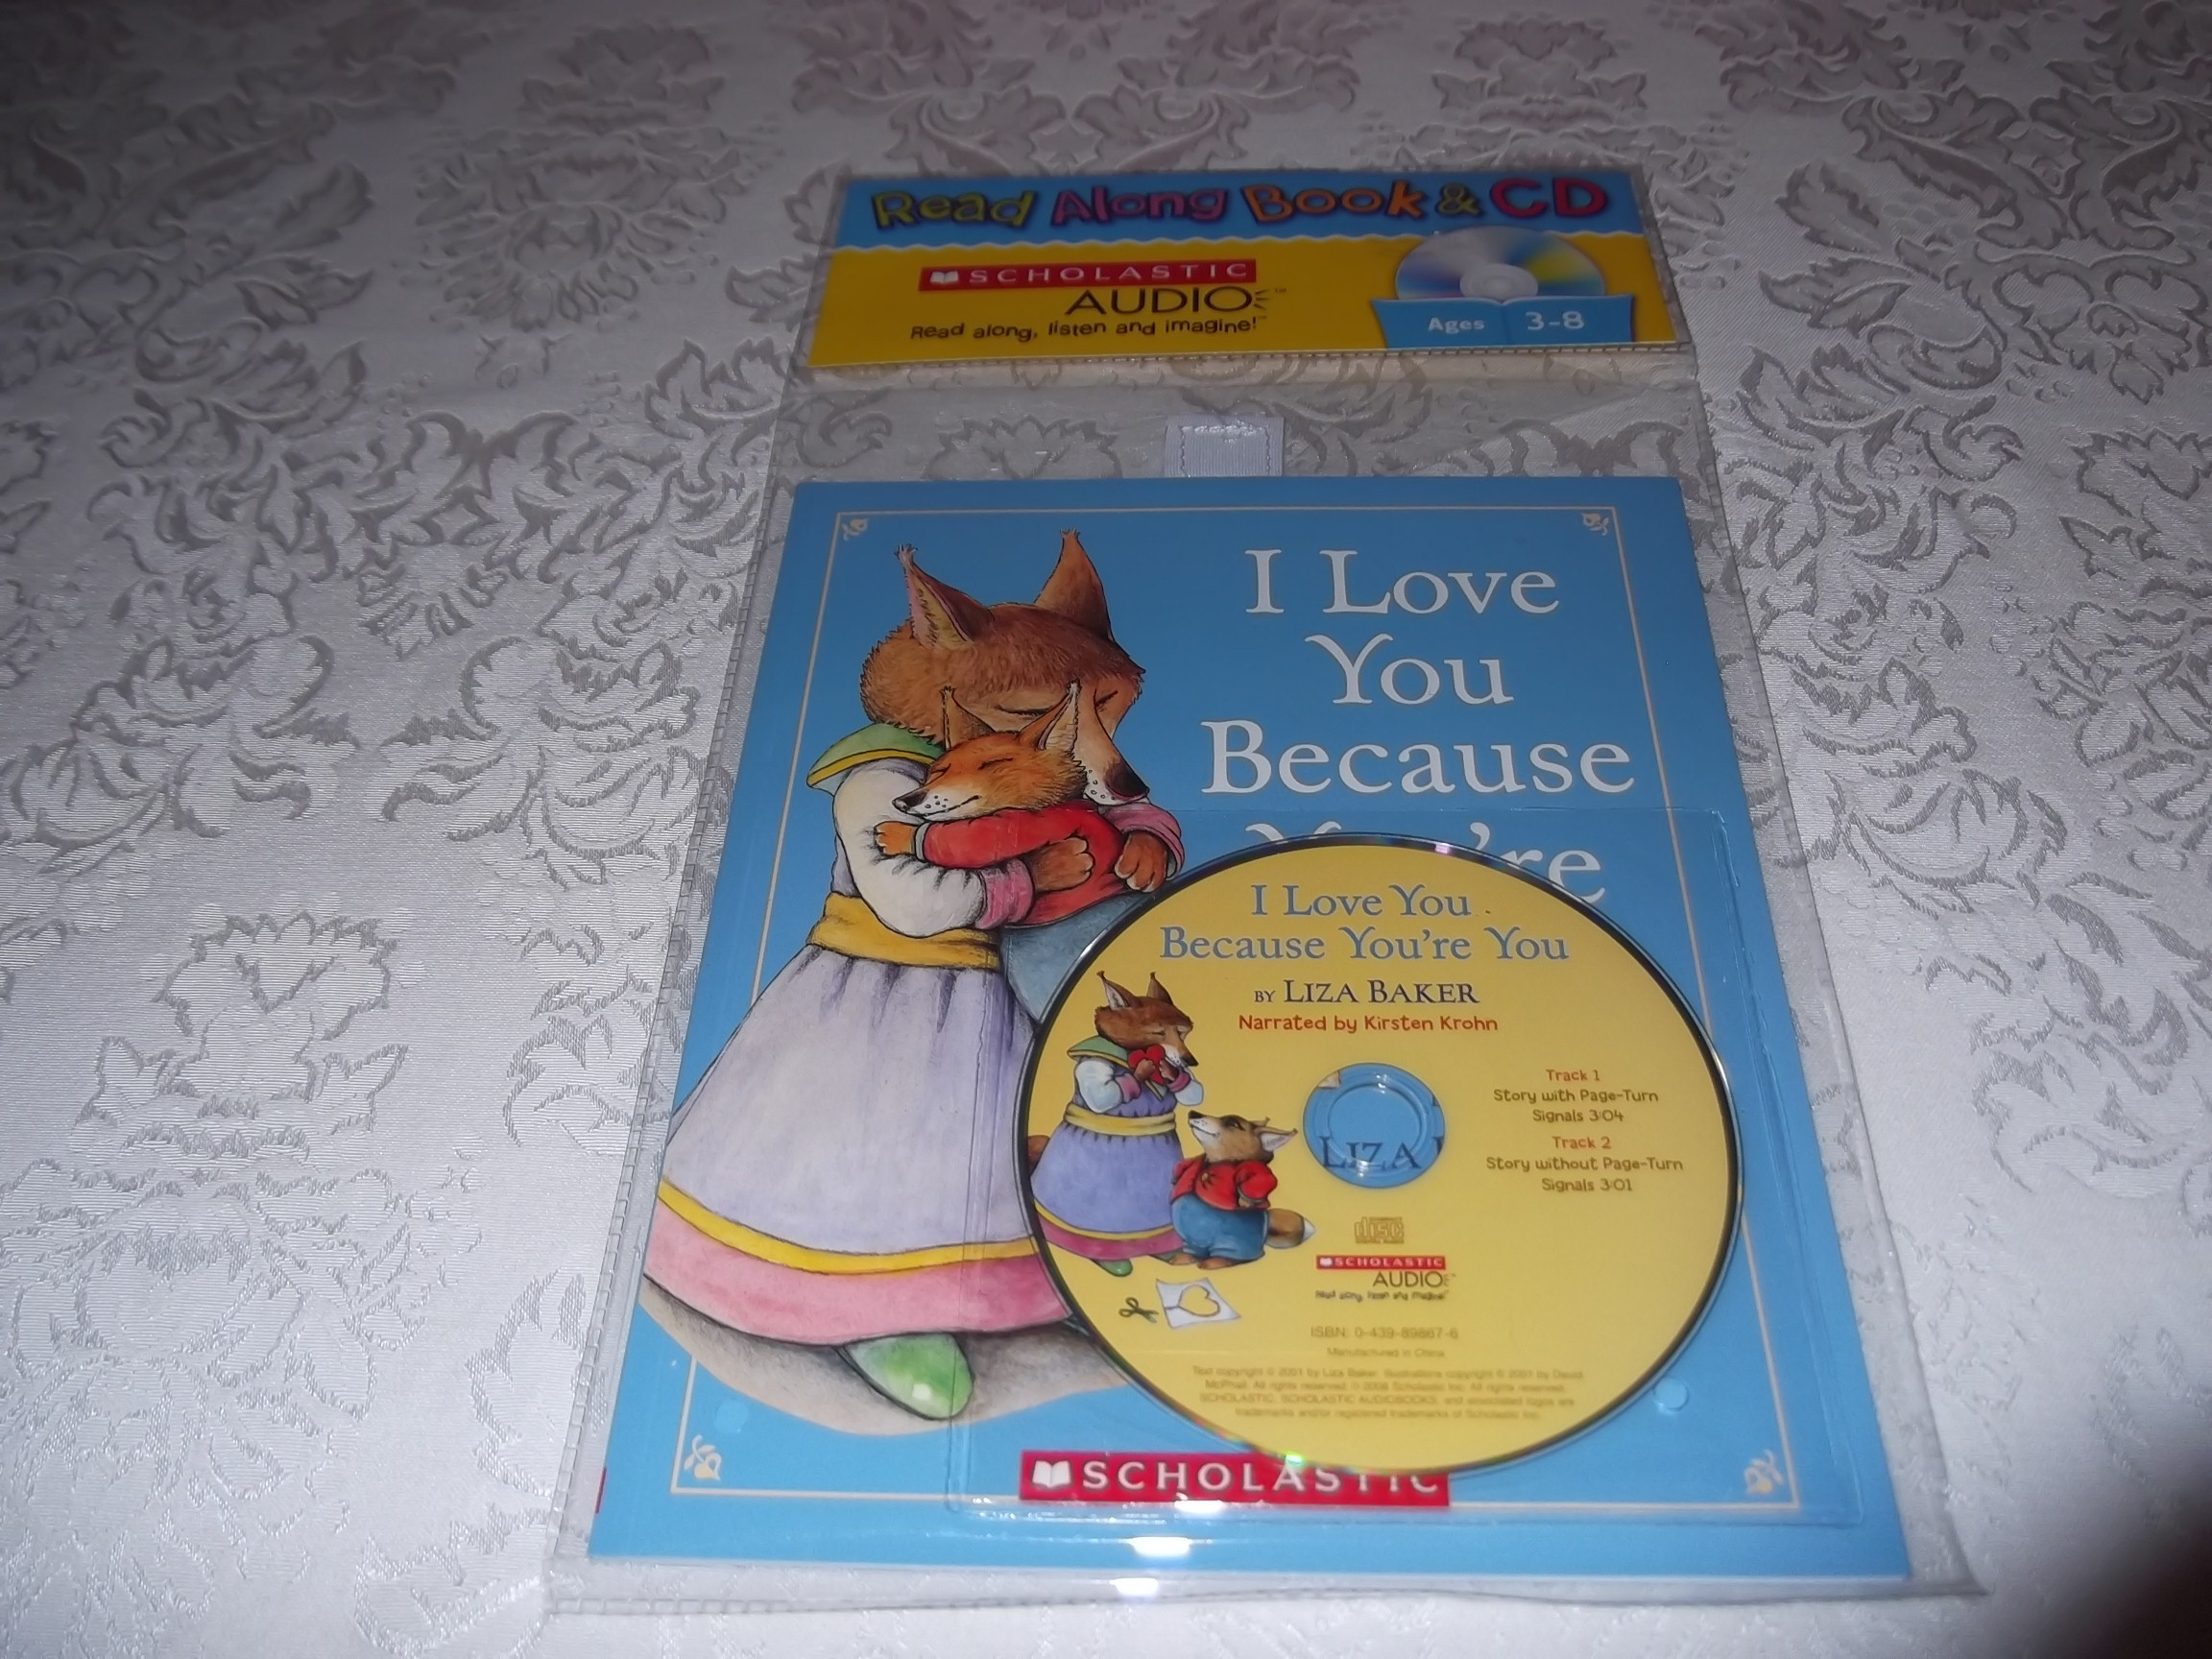 I Love You Because You're You Liza Baker Scholastic Audio CD and SC New